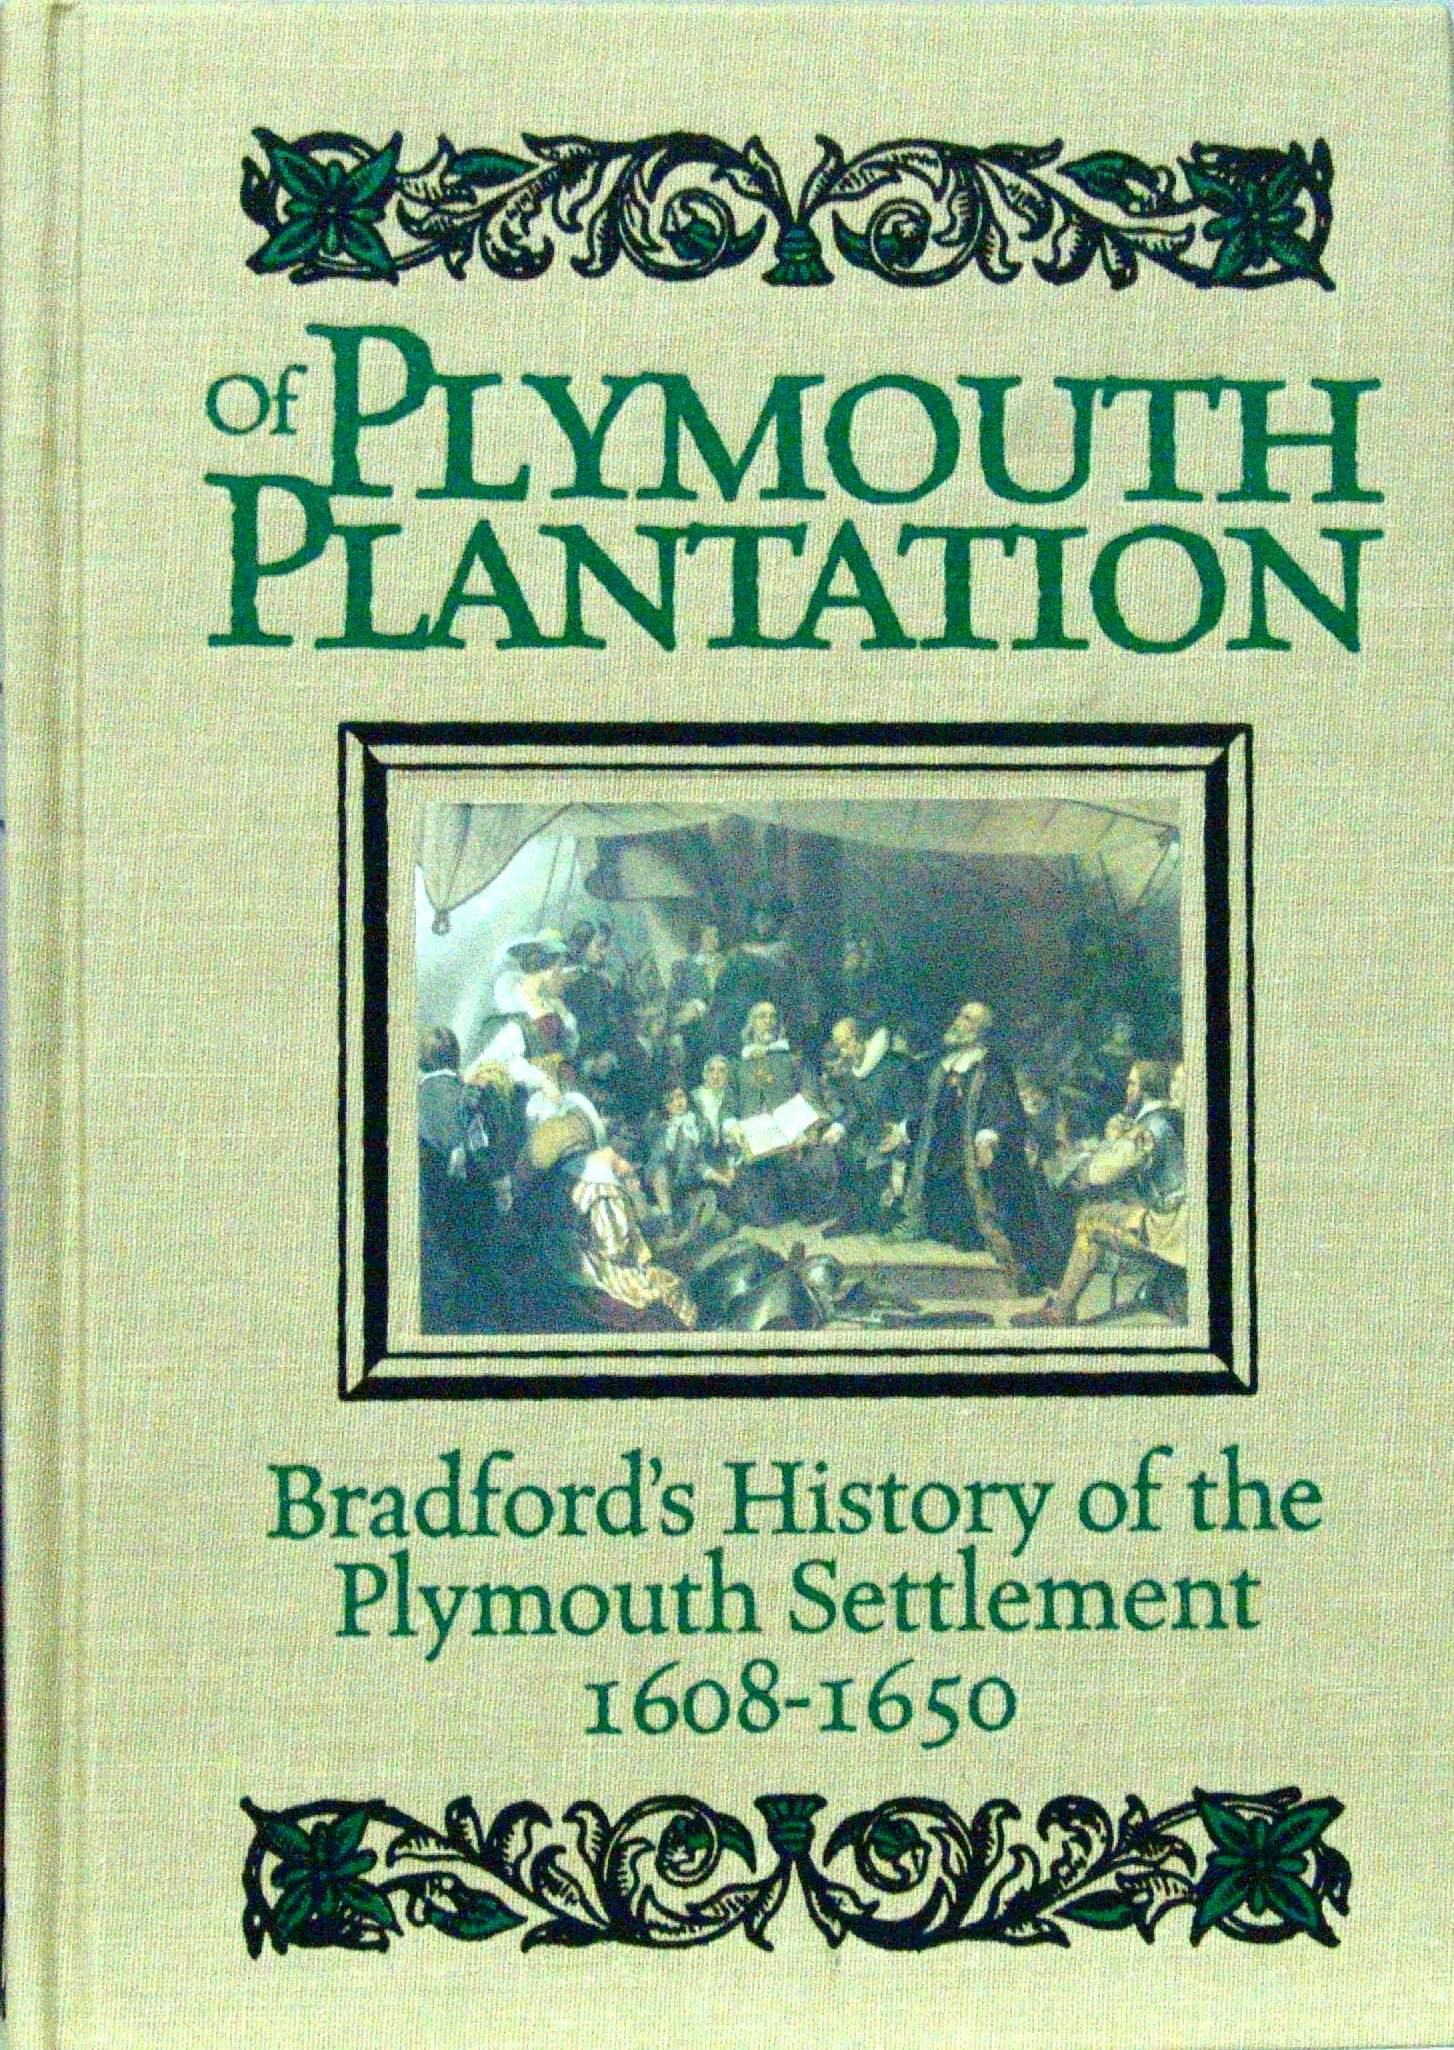 william bradford of plymouth plantation analysis essay Of plymouth plantation by william bradford rebecca beatrice brooks december 12, 2012 august 19, 2018 1 comment on of plymouth plantation by william bradford mayflower pilgrim william bradford wrote a detailed manuscript describing the pilgrim's experiences in the new world, now known as of plymouth plantation , between the years 1630 and 1651.